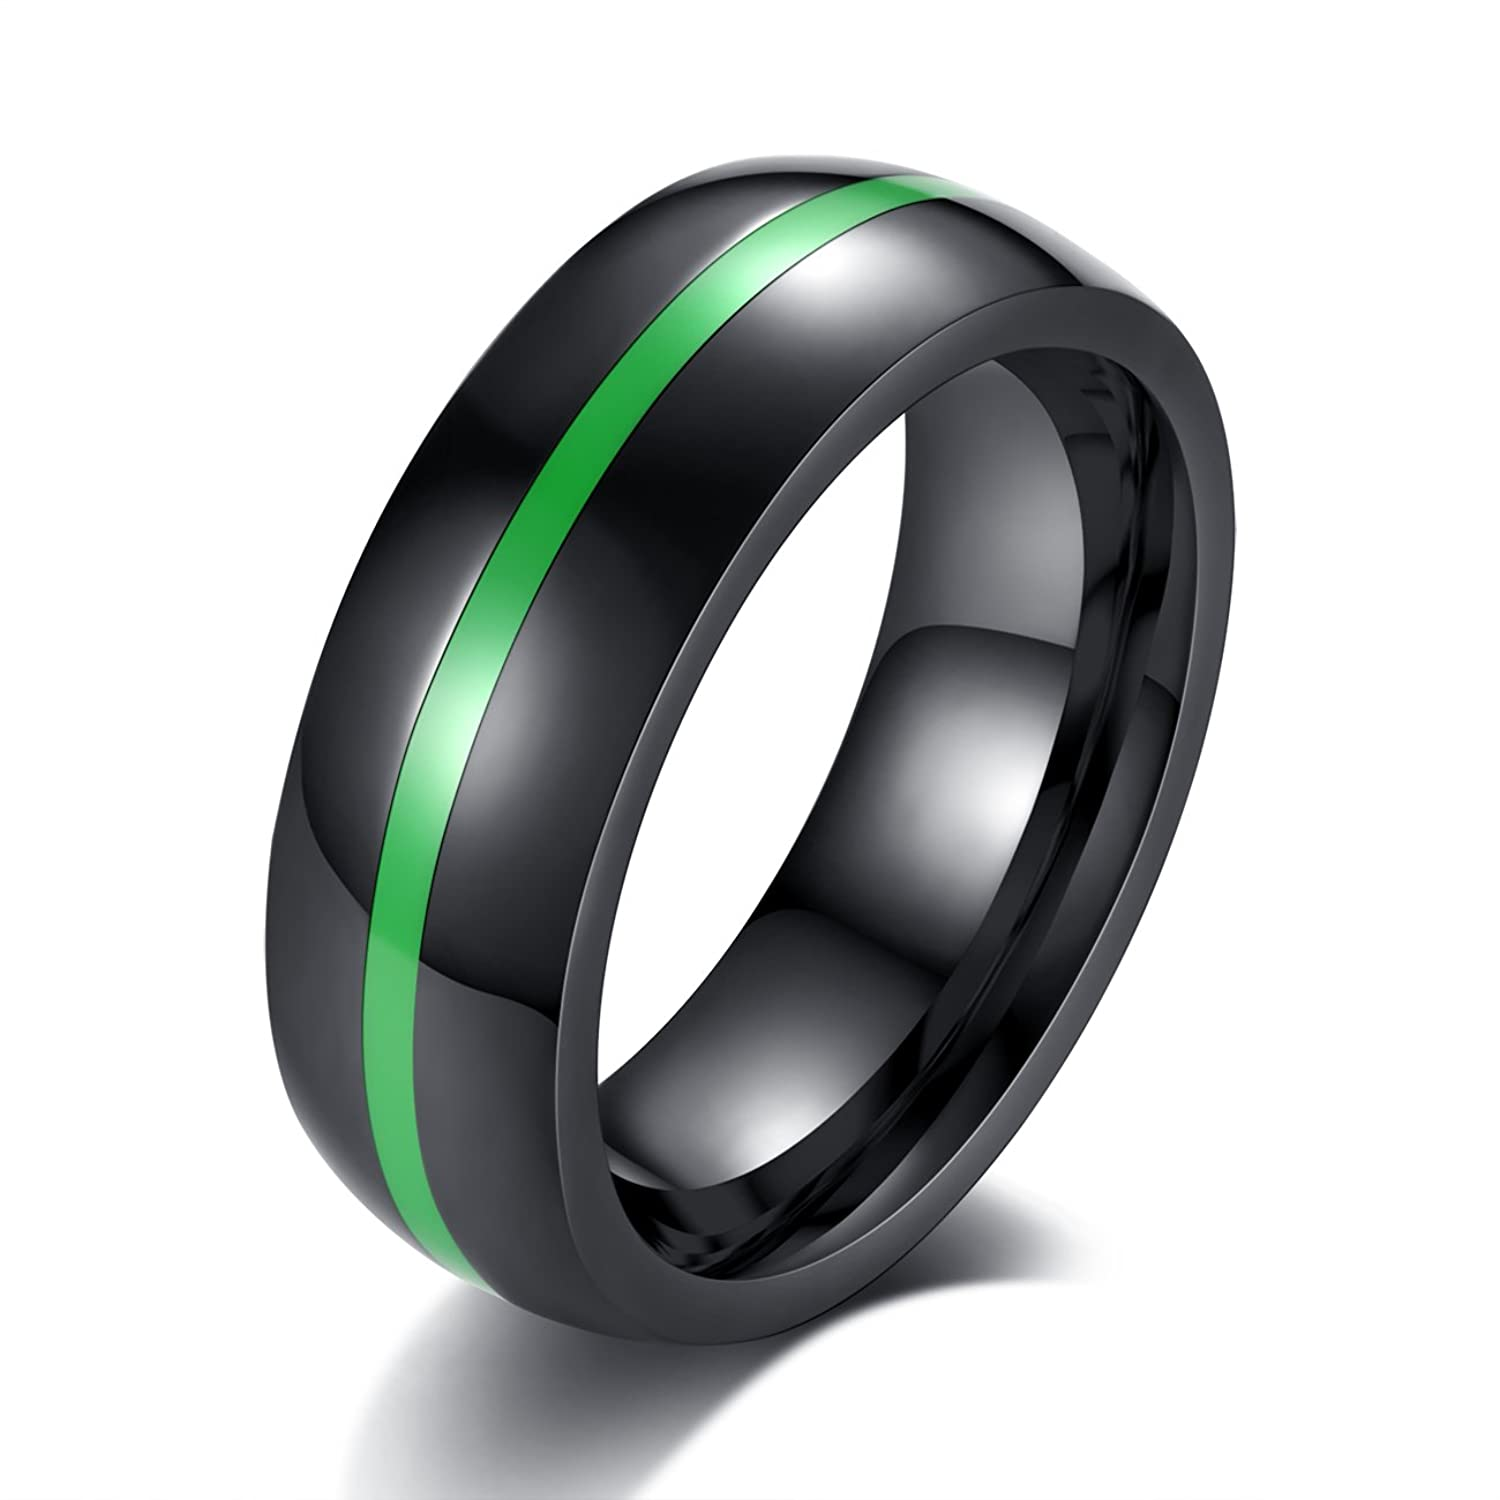 REVEMCN 8mm Black Stainless Steel Thin Line Polished Finish Wedding Band Ring For Men Women